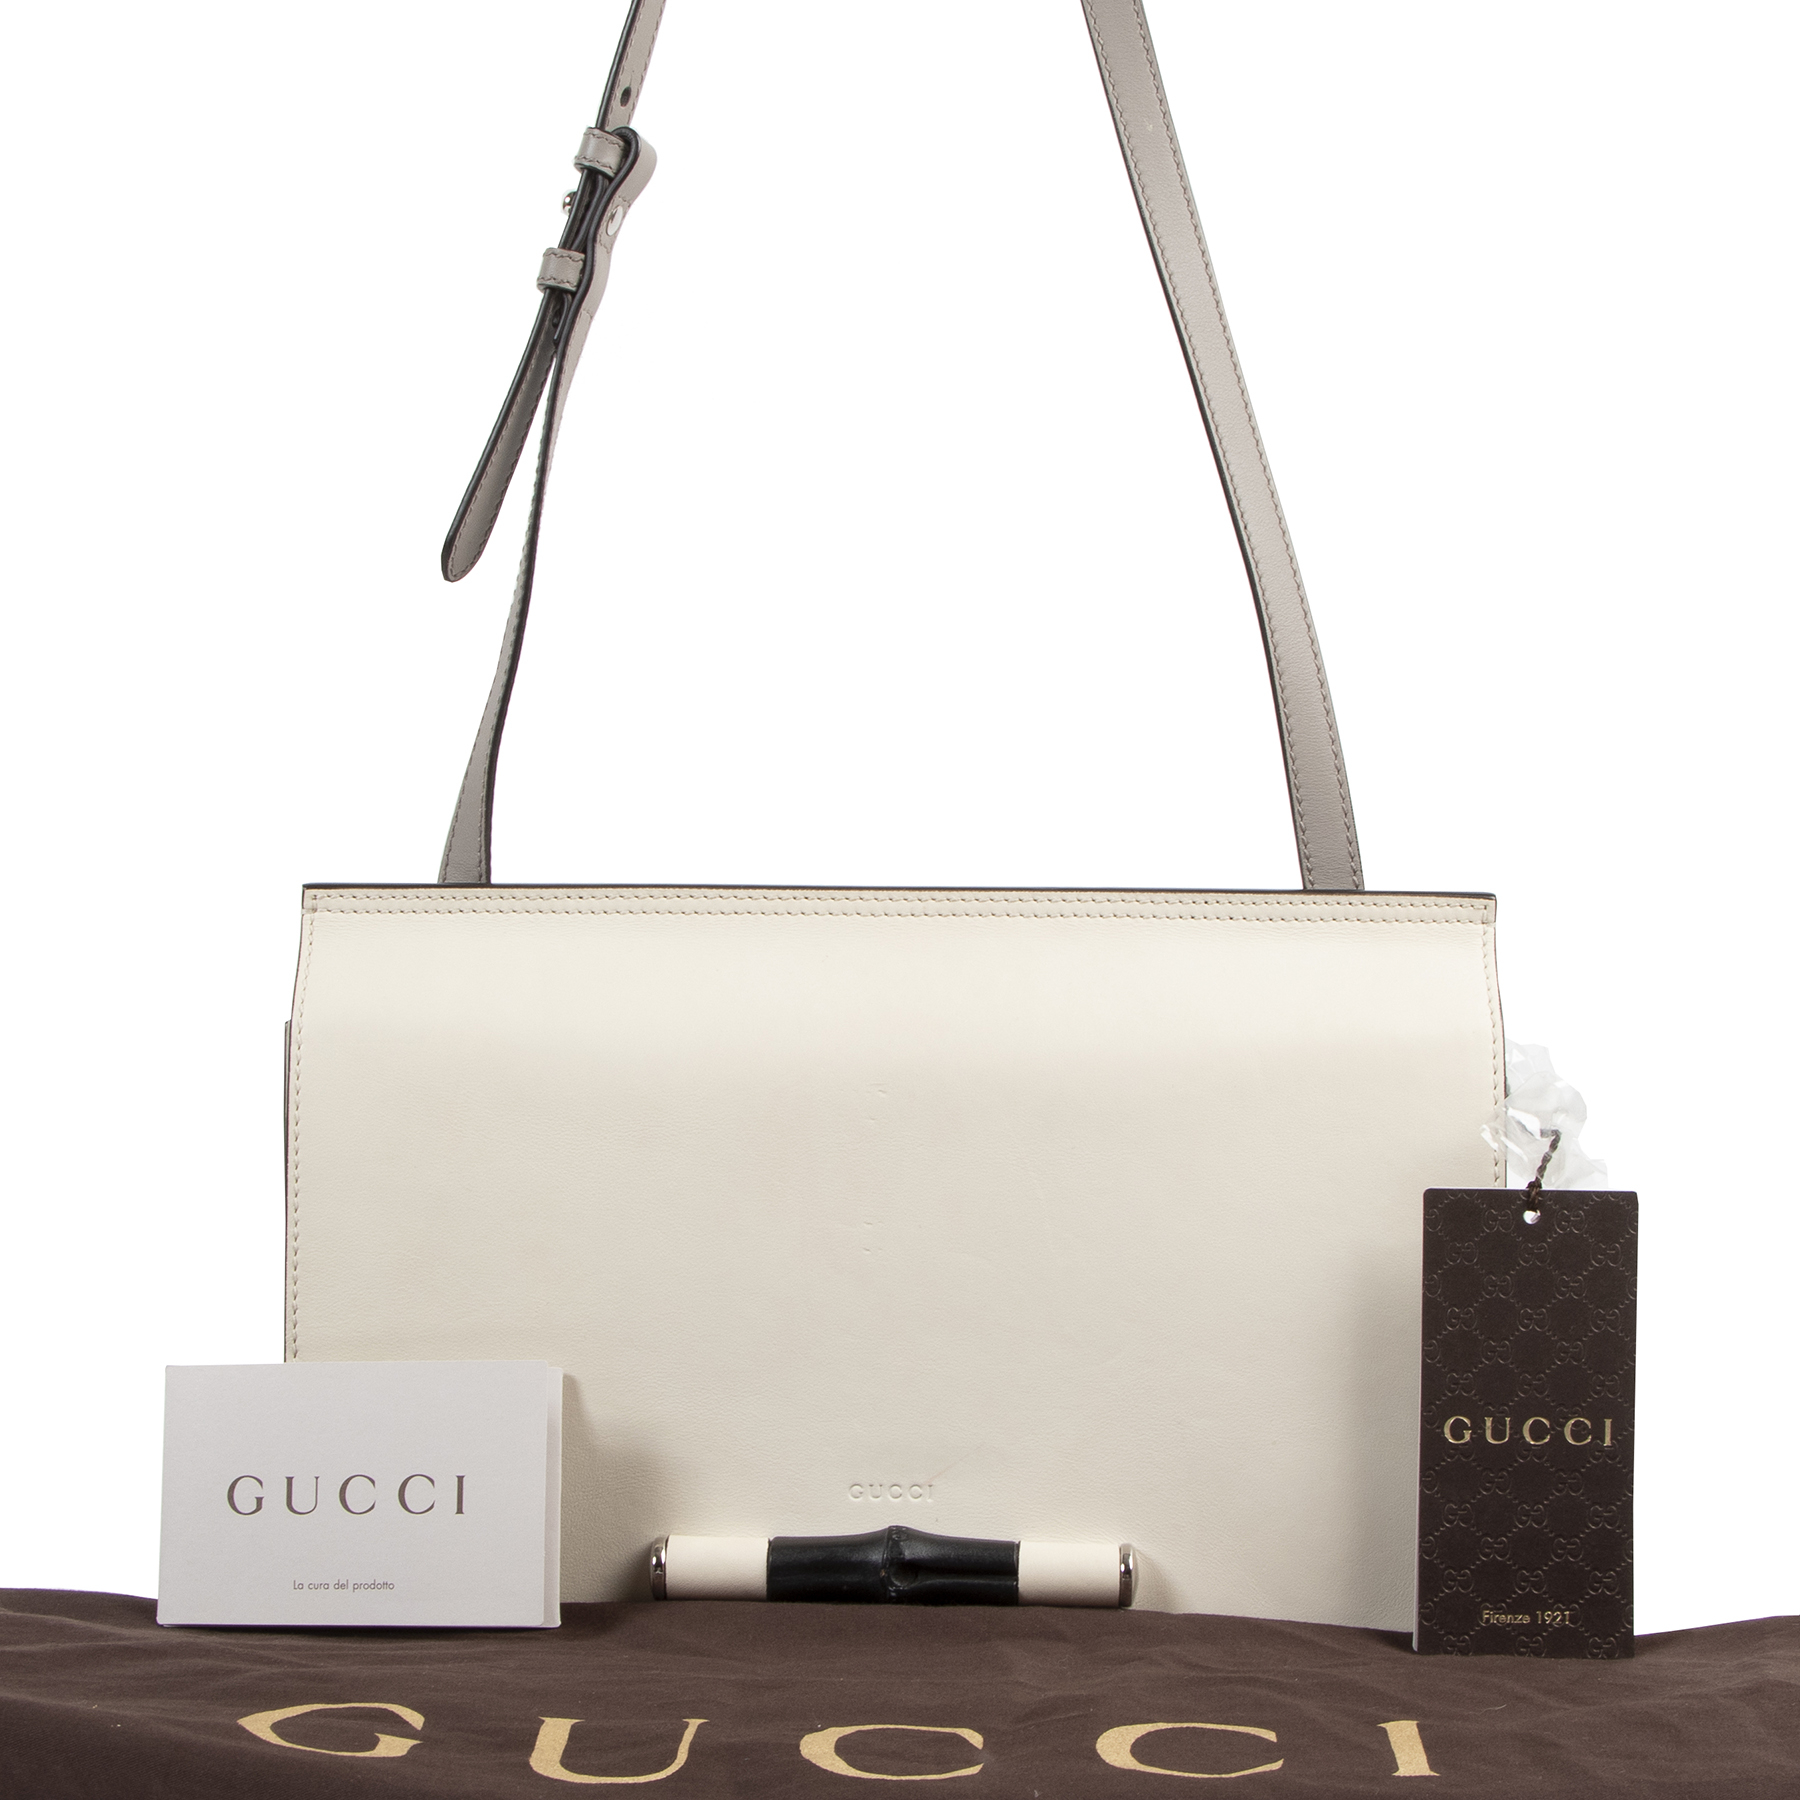 Authentic secondhand Gucci White Leather Bamboo Shoulder Bag designer bags fashion luxury vintage webshop safe secure online shopping